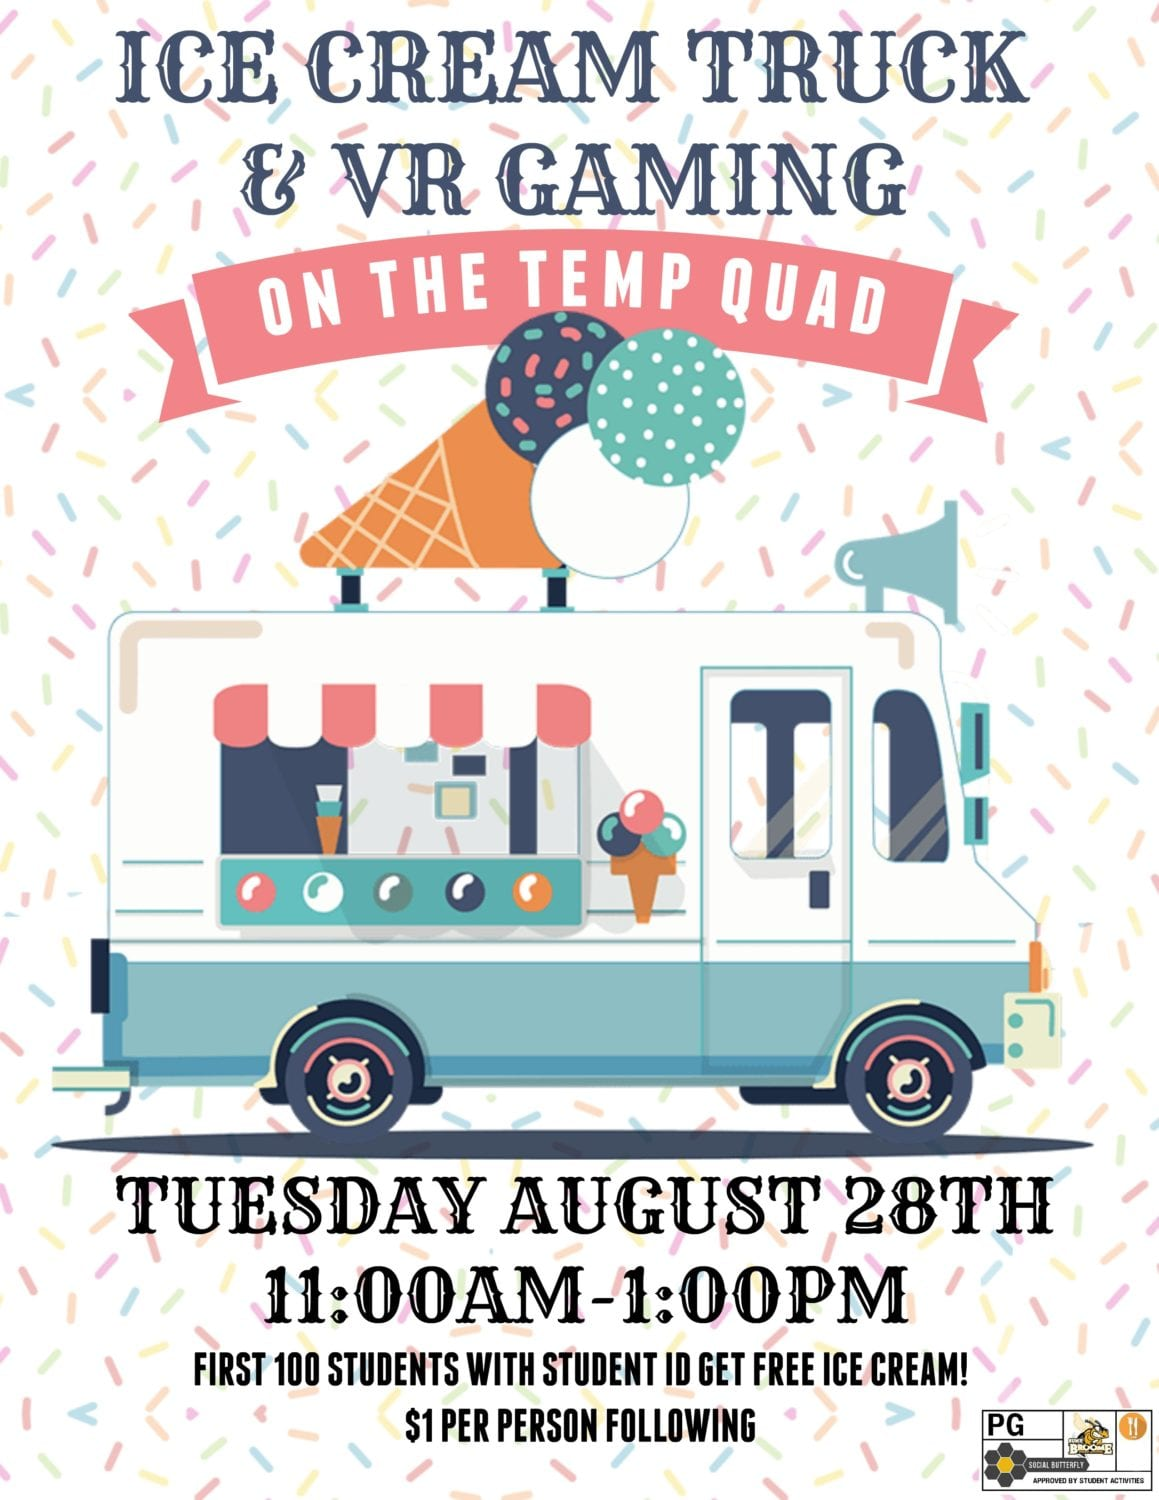 Virtual Reality Gaming with Ice Cream Truck on Aug. 28